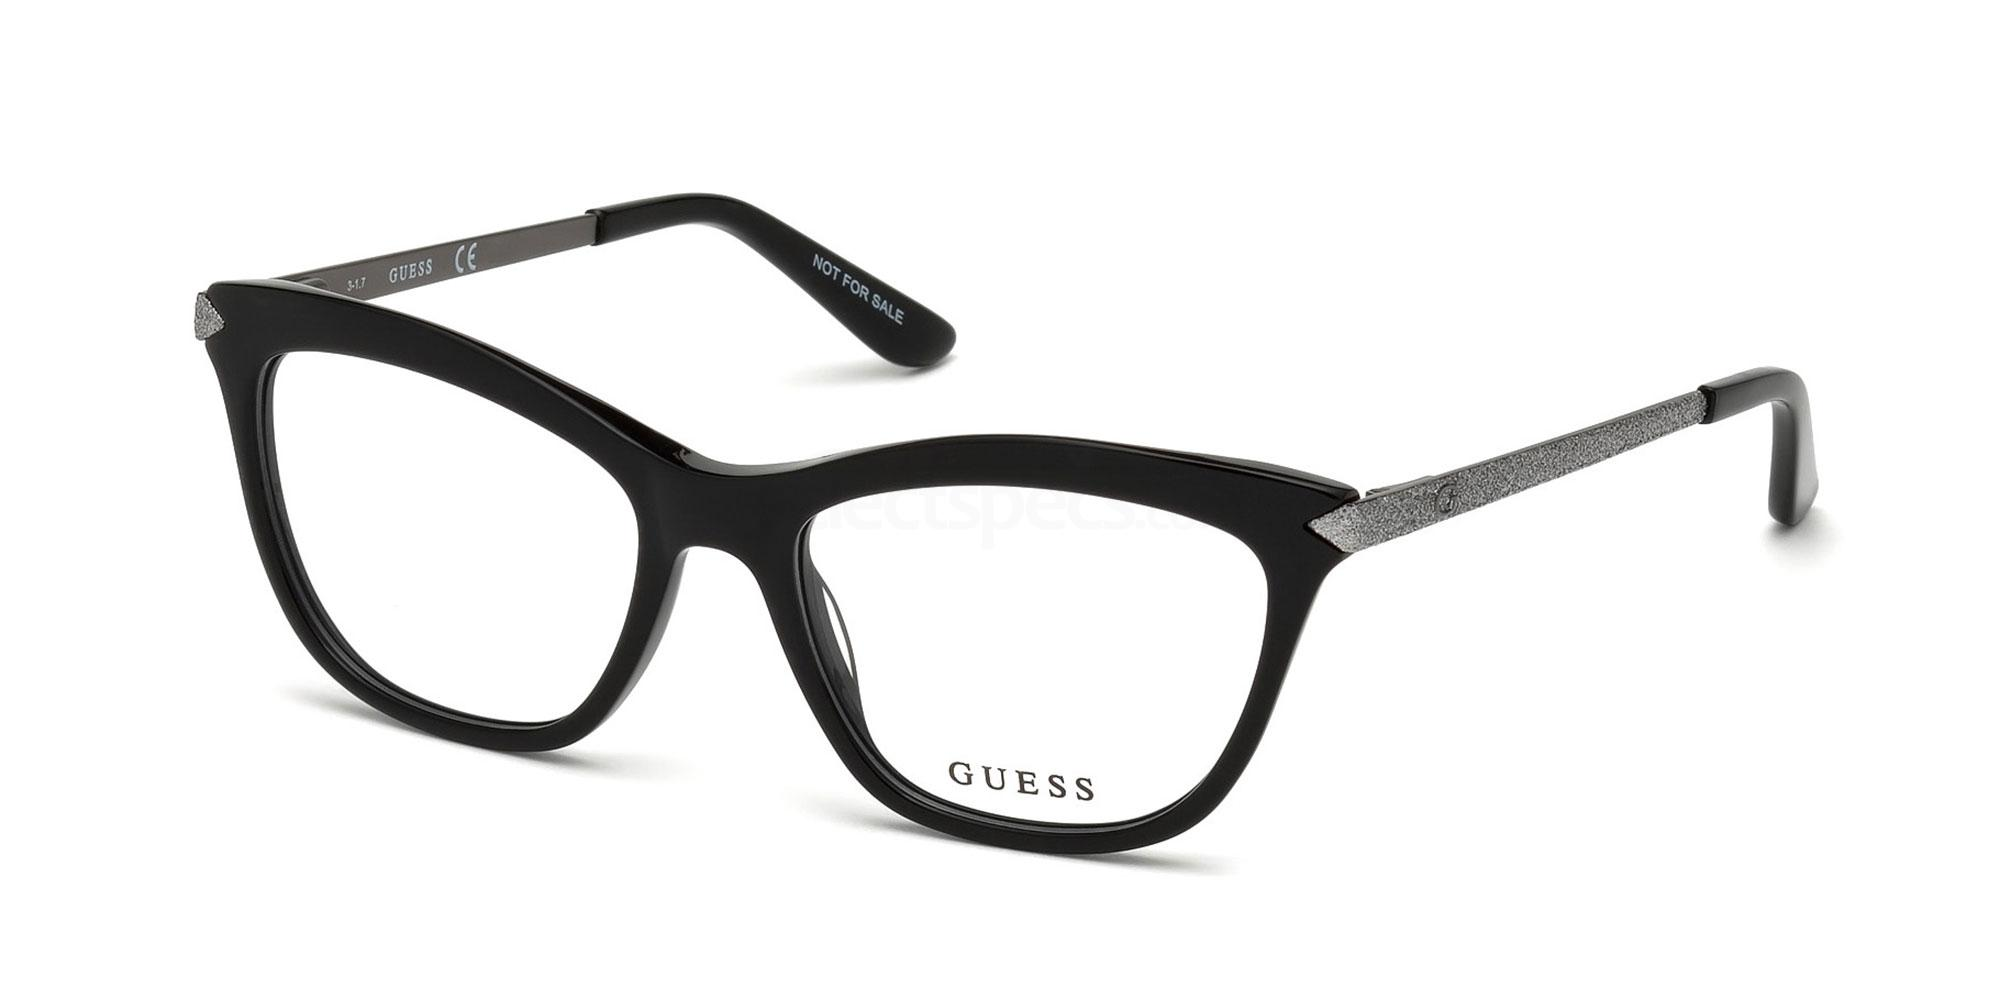 005 GU2655 Glasses, Guess